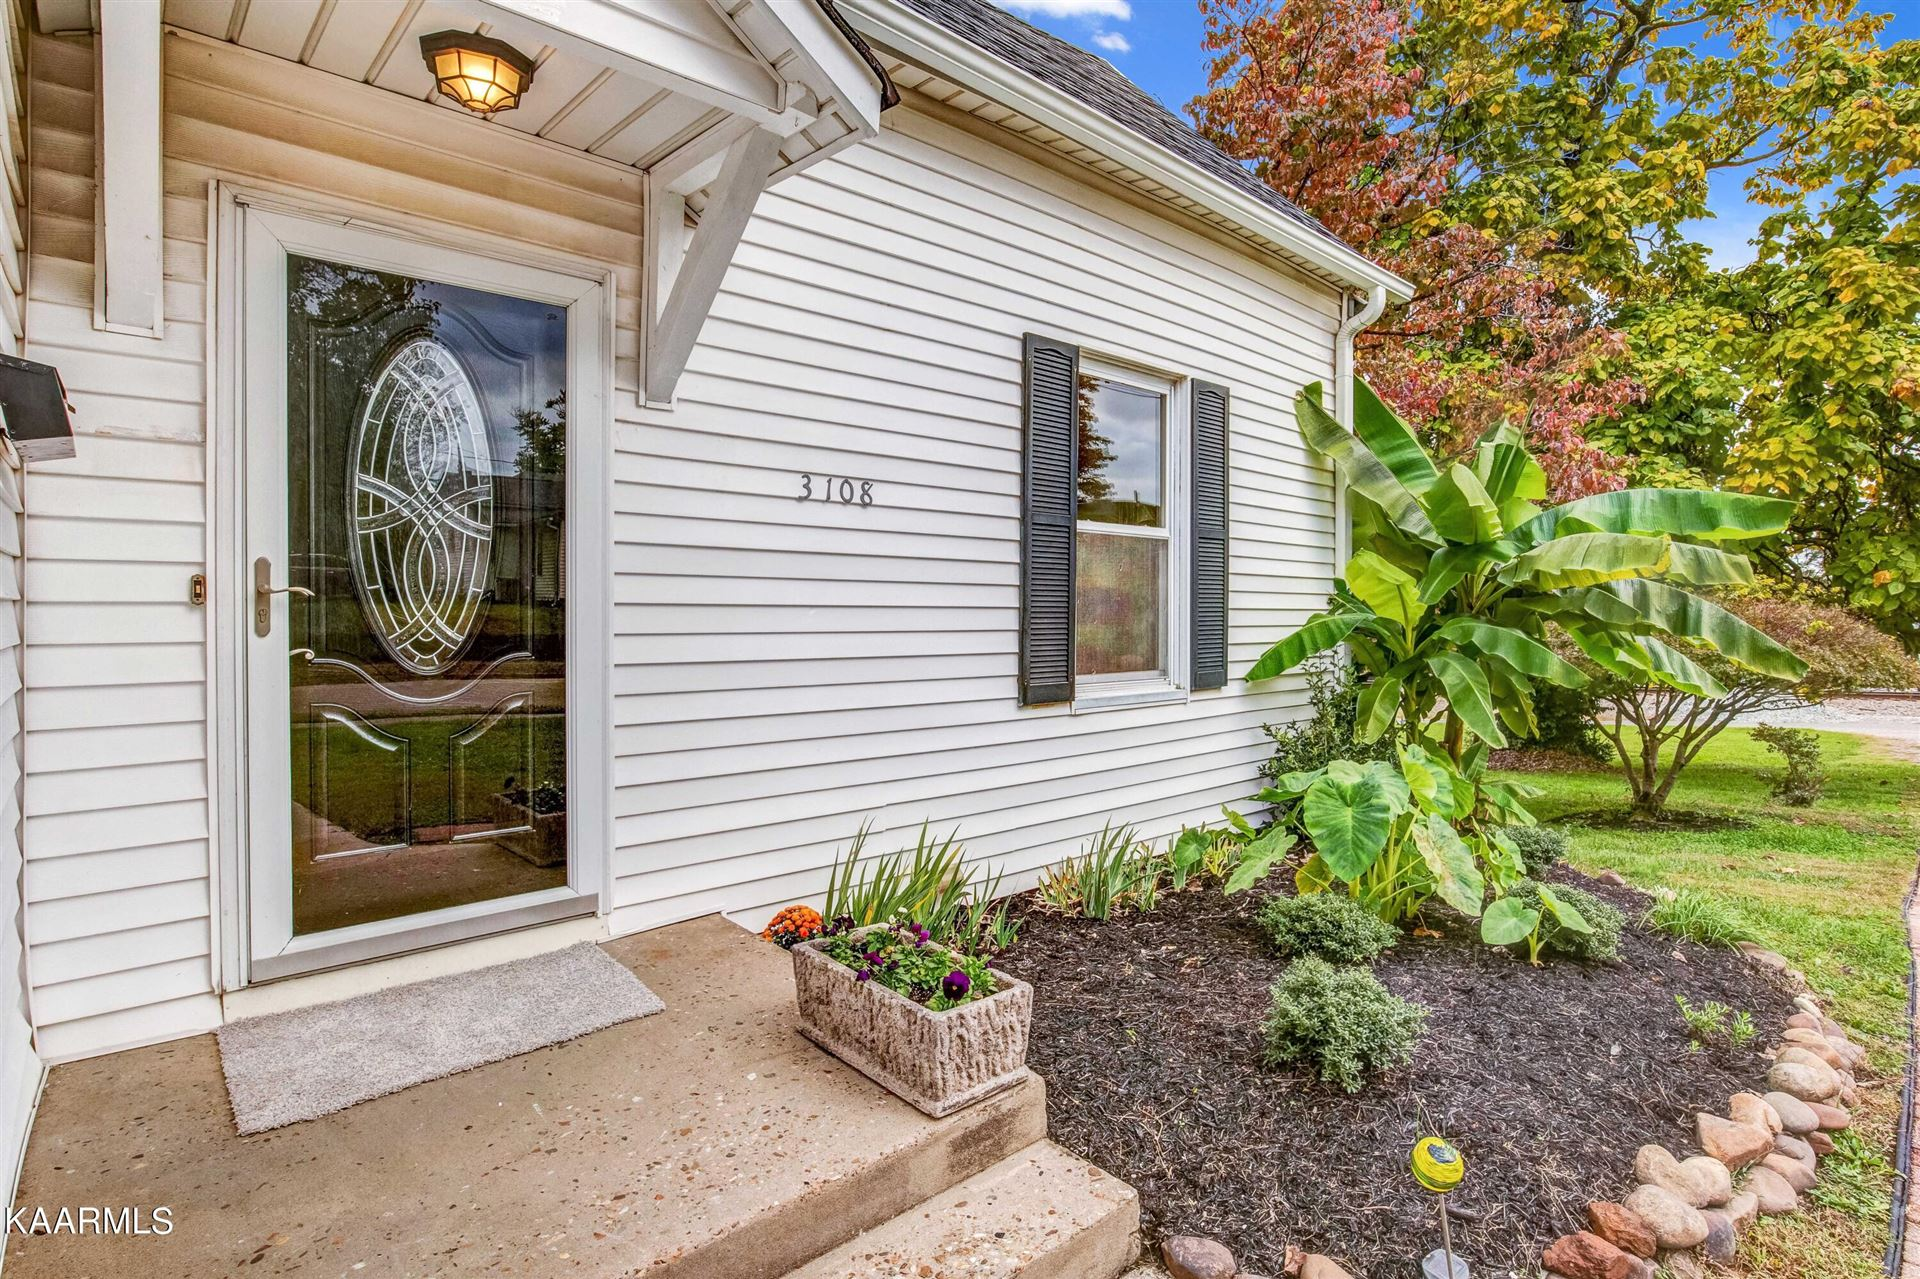 Photo of 3108 Pershing St, Knoxville, TN 37917 (MLS # 1171703)